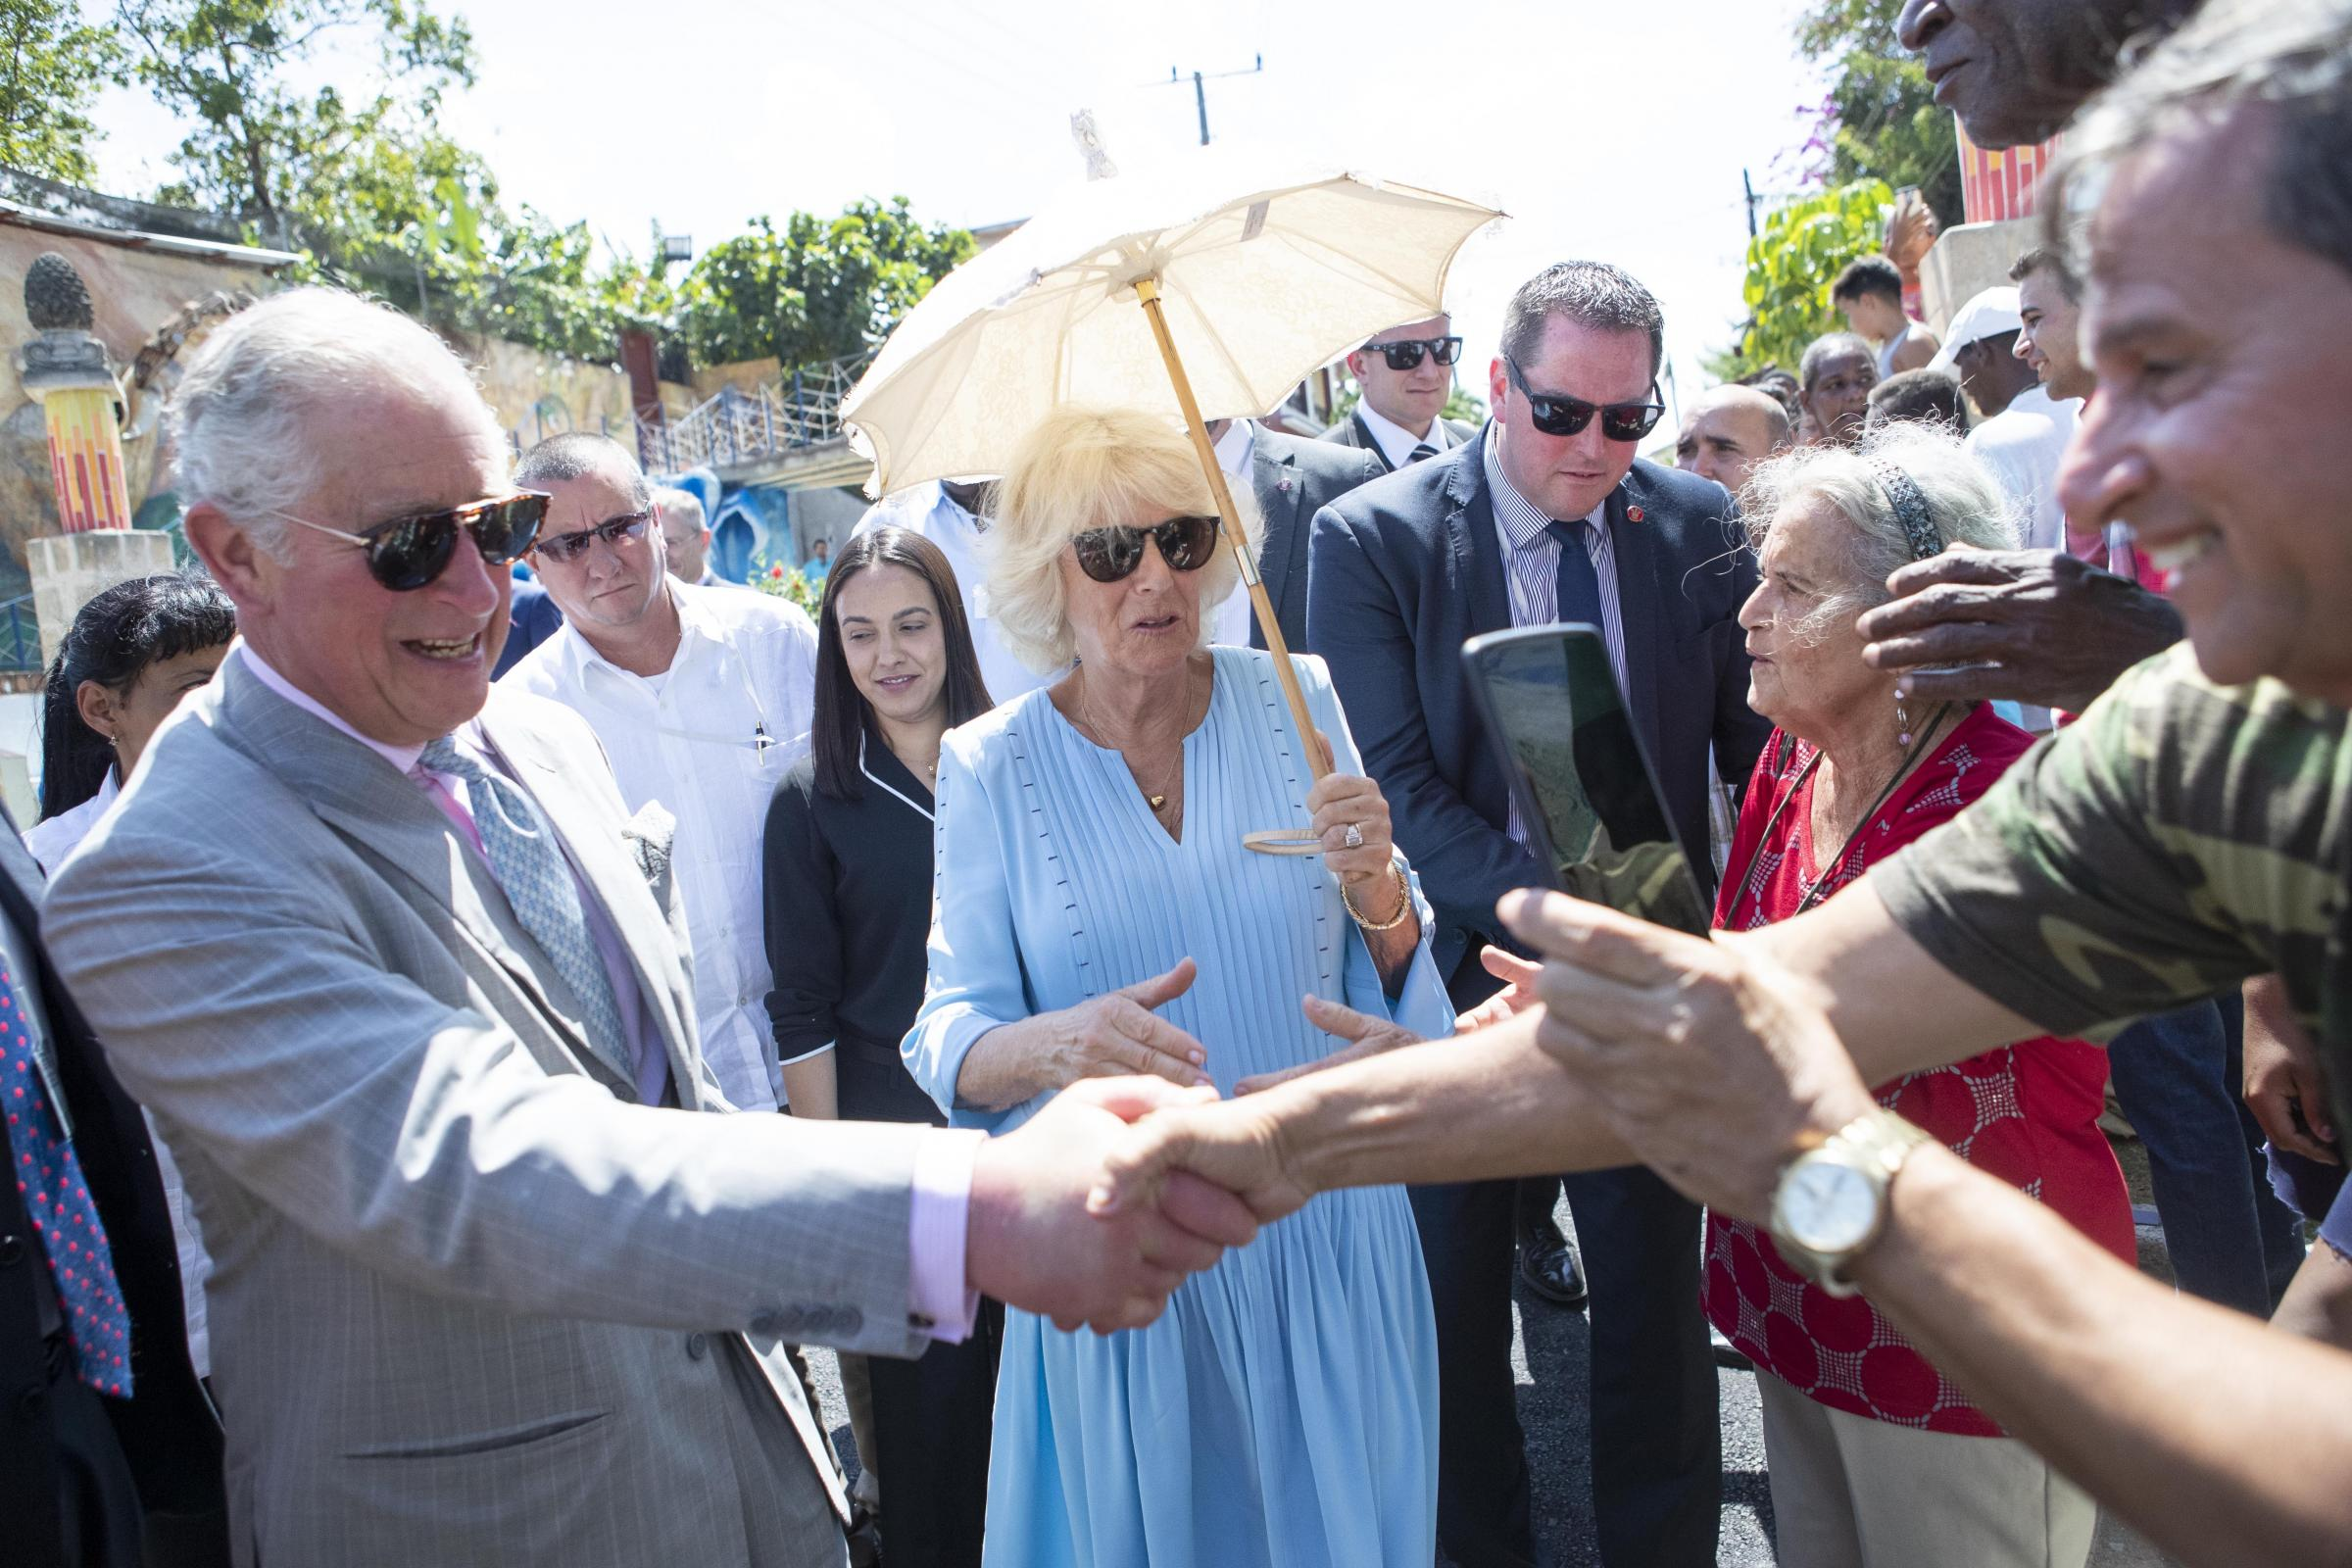 The Prince of Wales and the Duchess of Cornwall meet members of the public in Havana